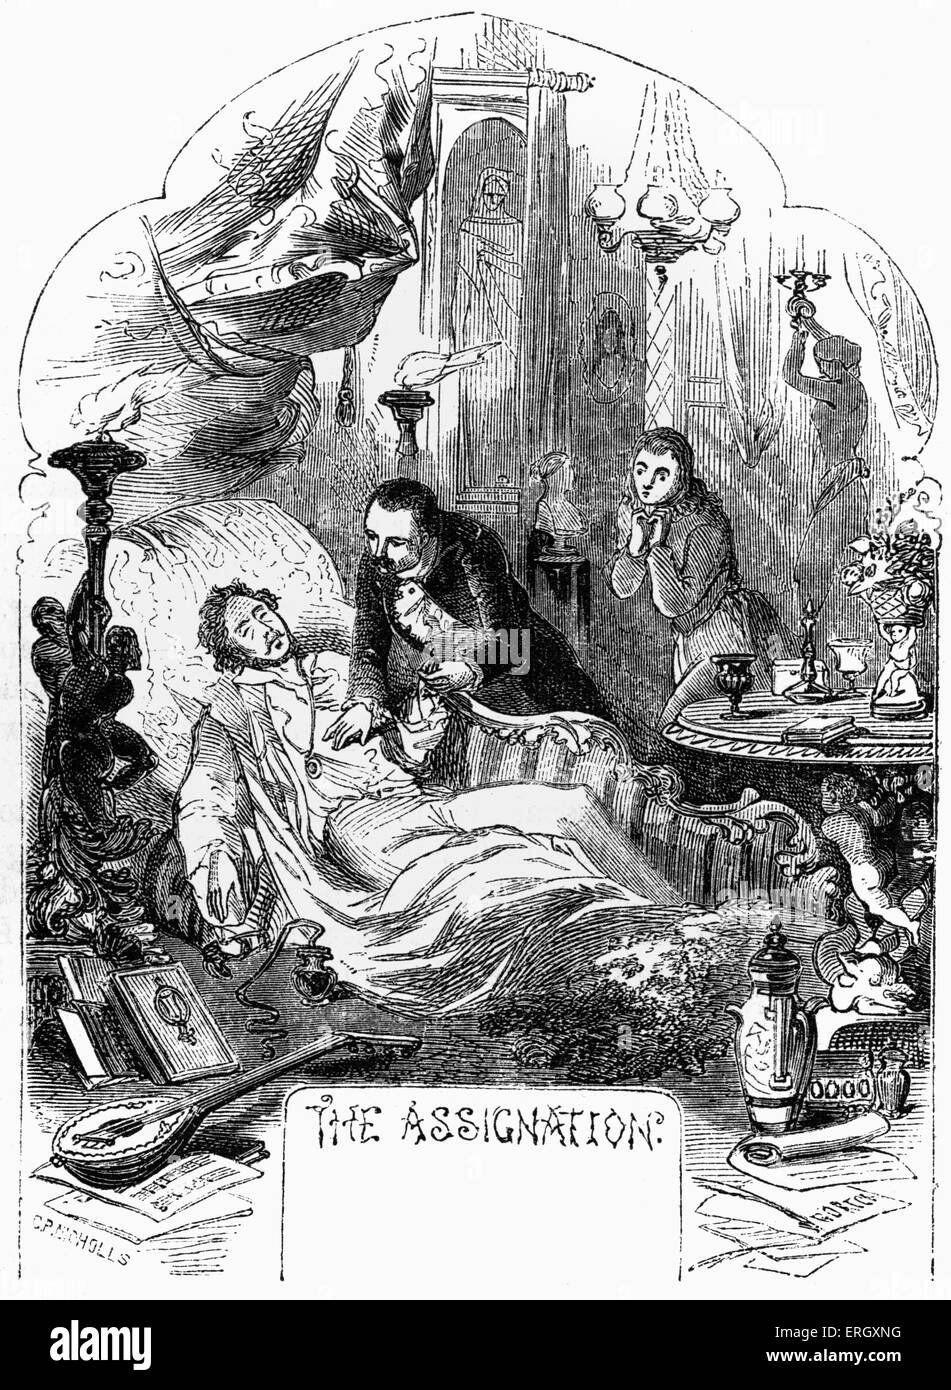 an analysis of the short story the fall of the house of usher by edgar allan poe Here is a short story film of edgar allan poe's the fall of the house of usher here is a short story film of edgar allan poe's the fall of the house of usher  summary & analysis.